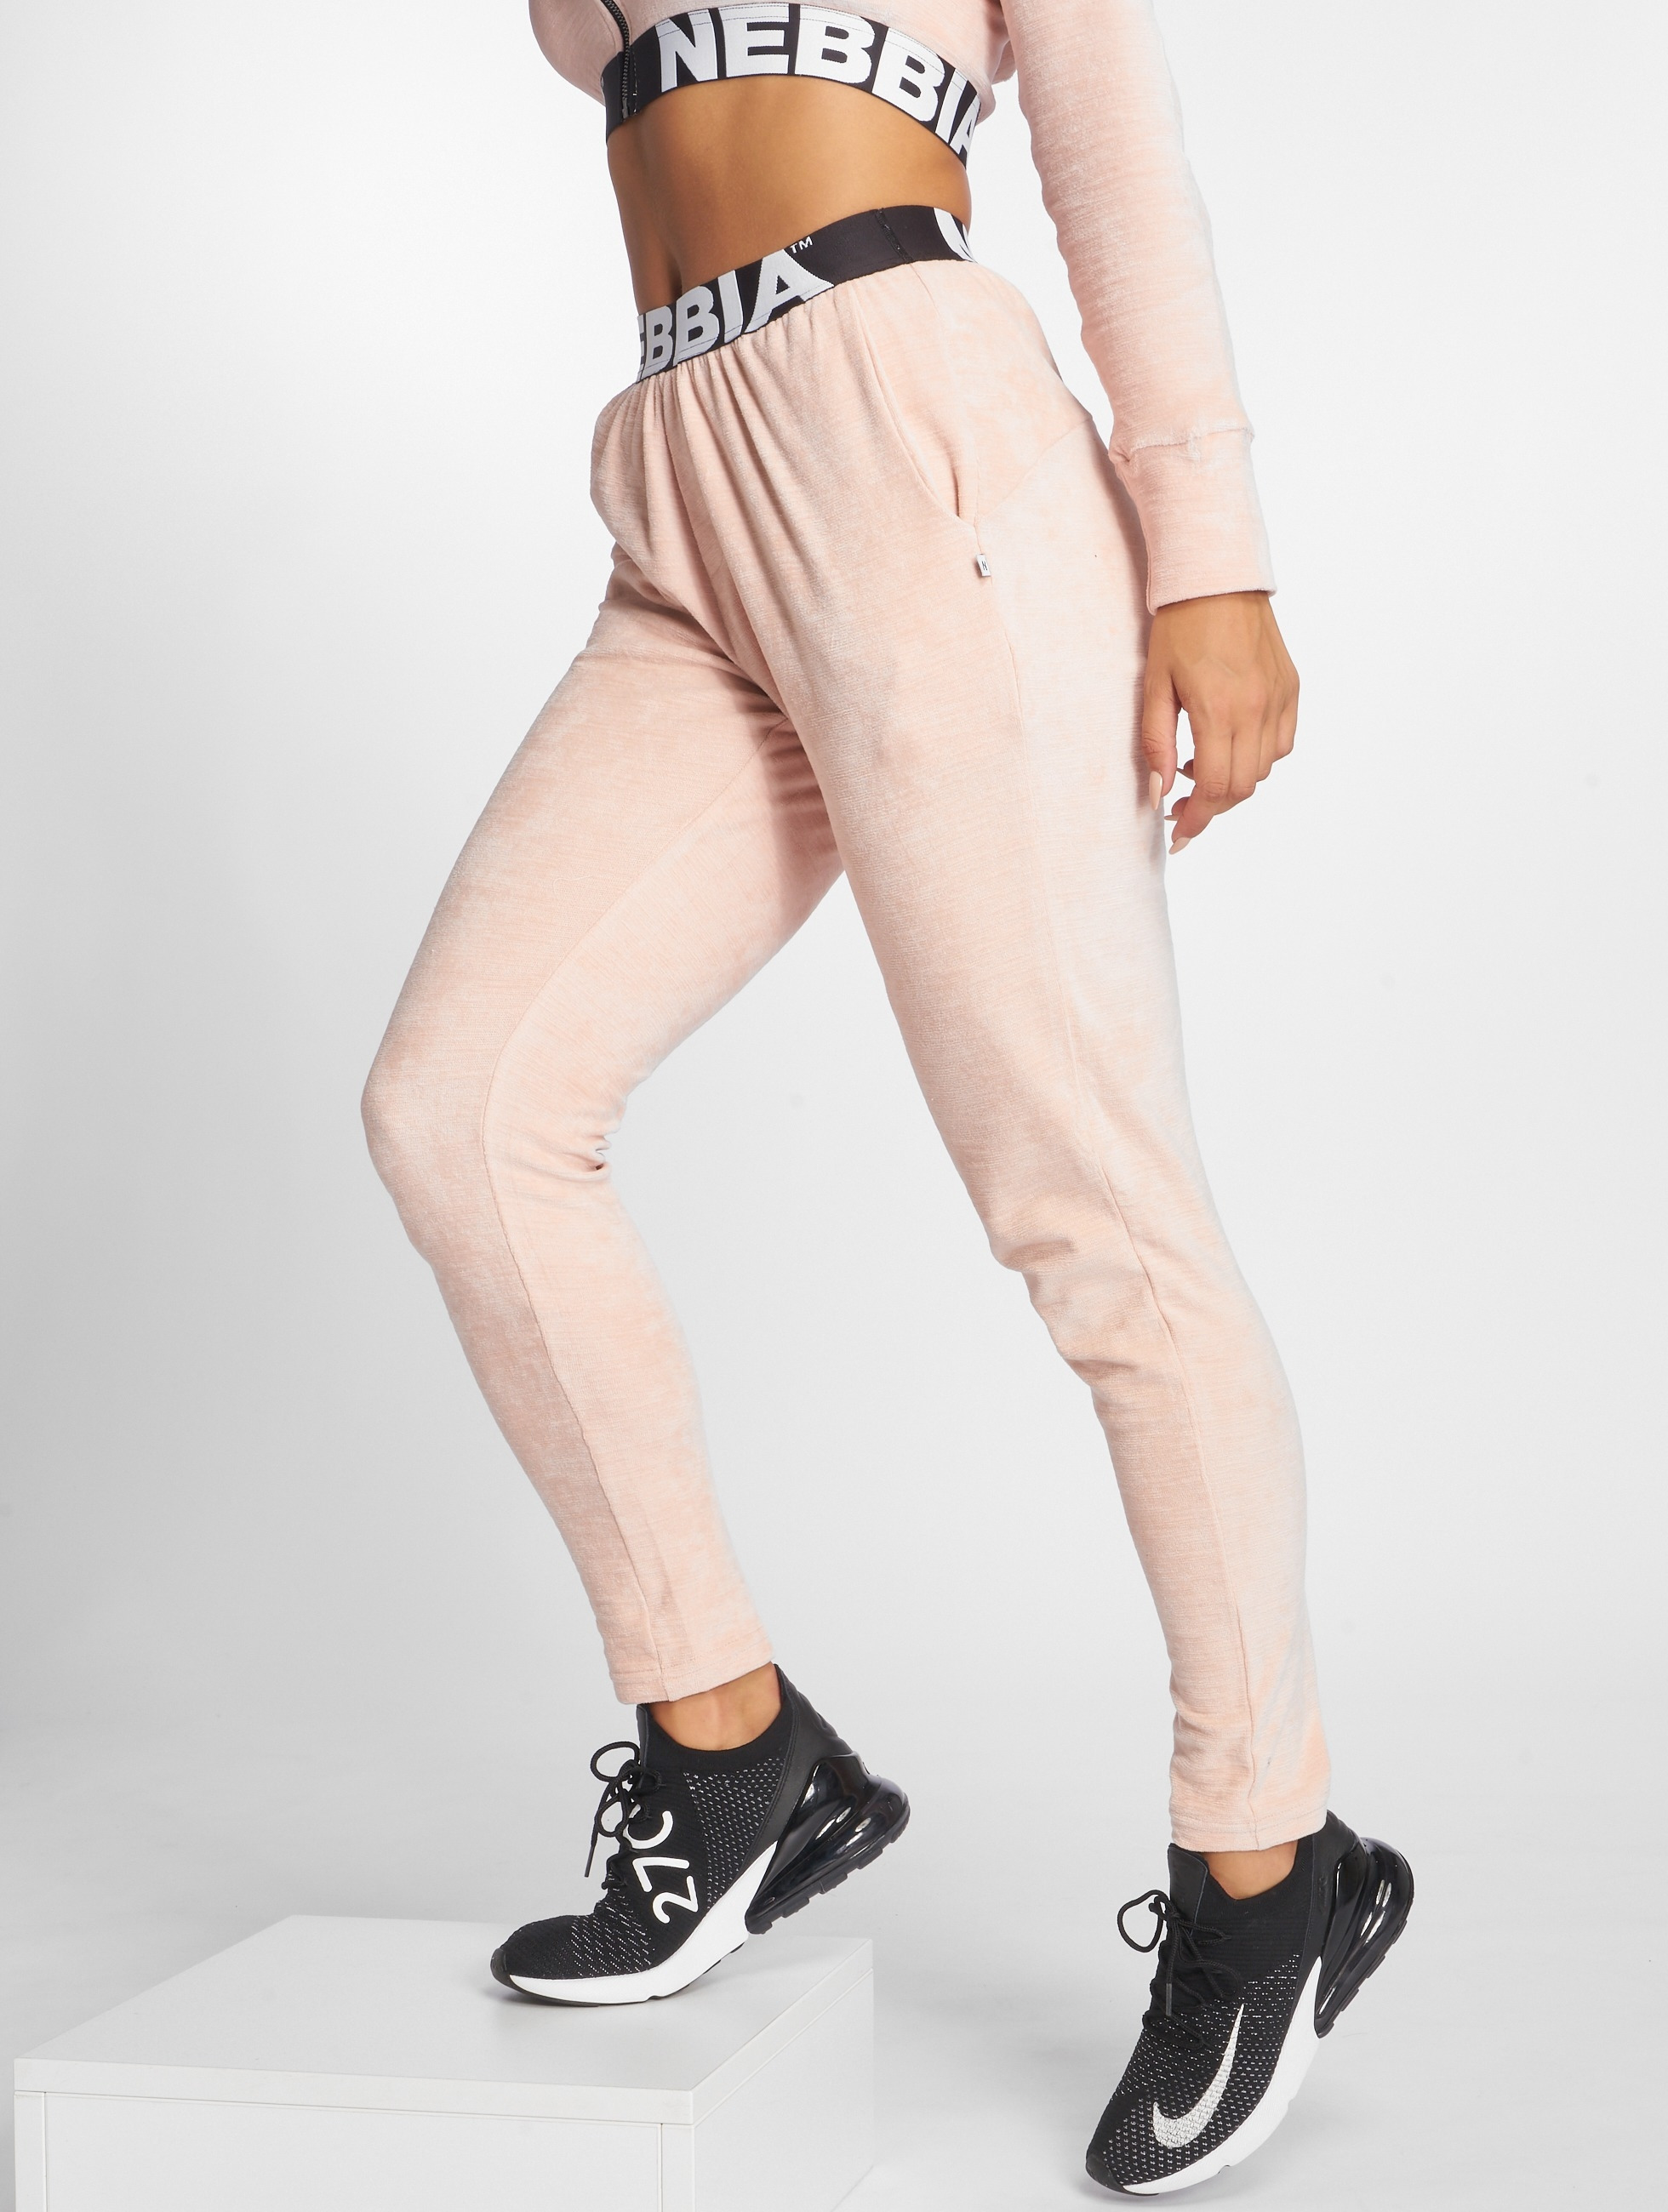 Nebbia | Drop Crotch rose Femme Pantalons de jogging